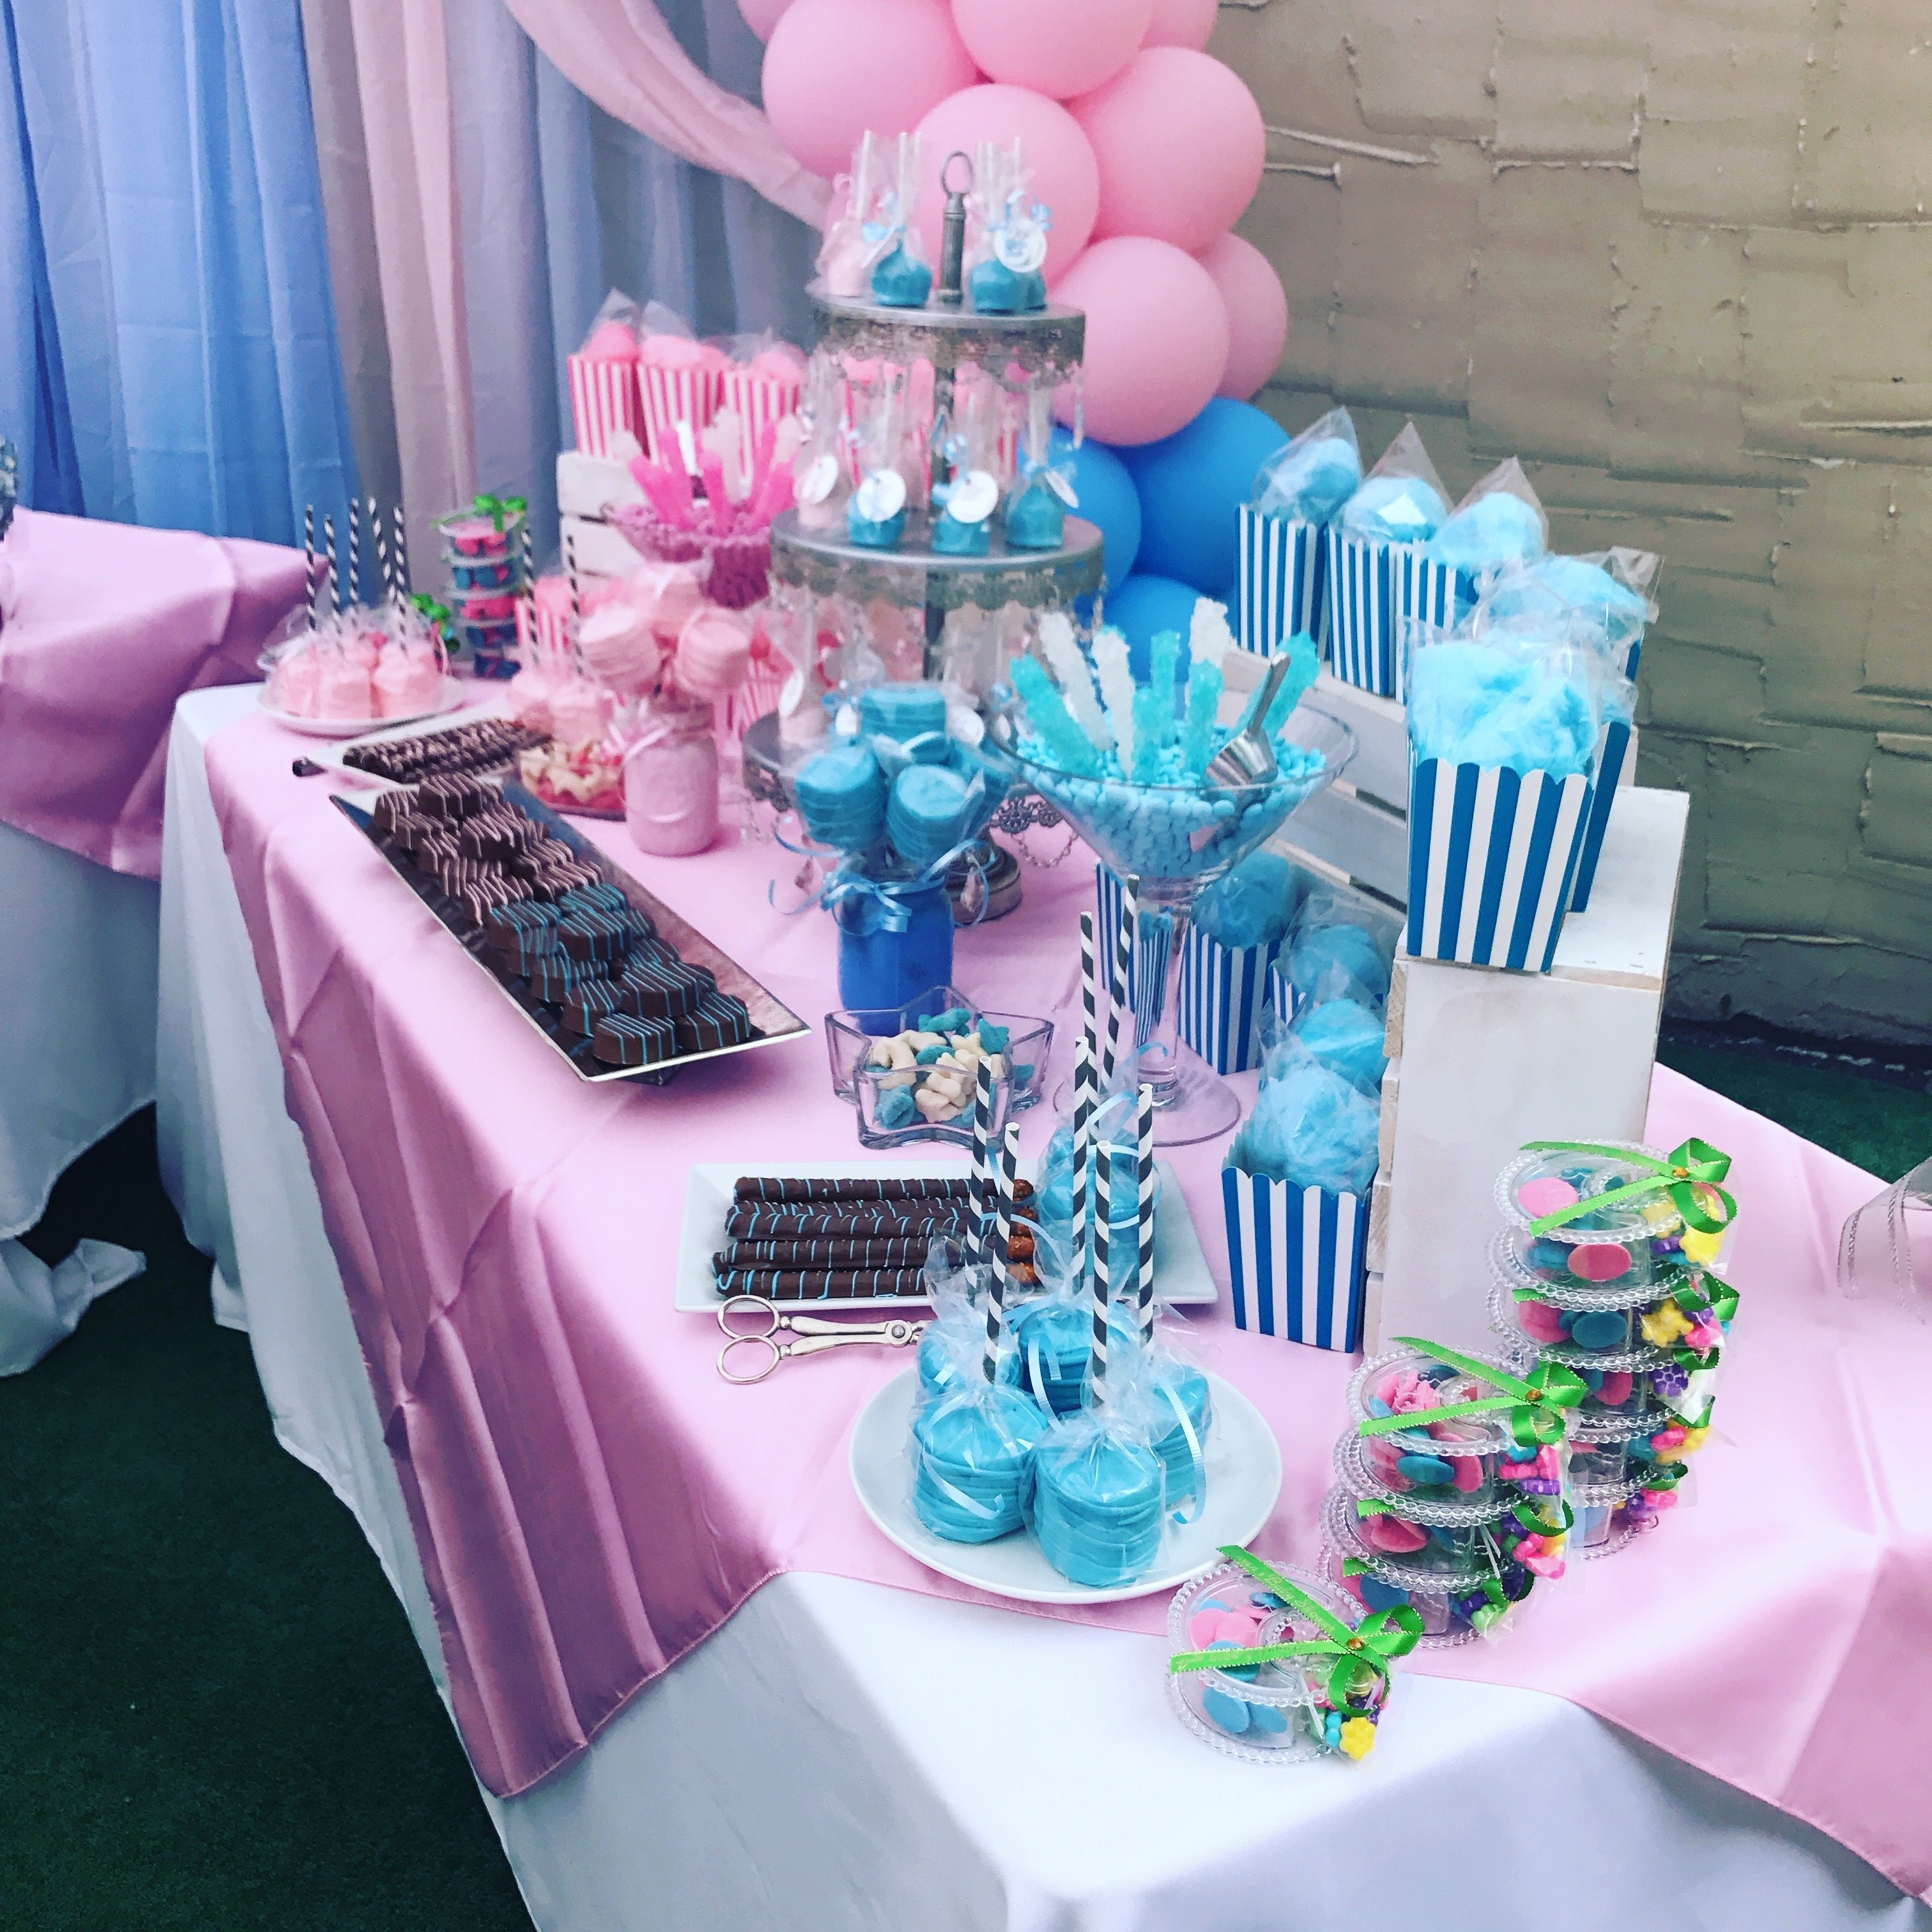 10 Unique Candy Buffet Ideas For Baby Shower baby shower candy table that we made for a gender reveal party 2020